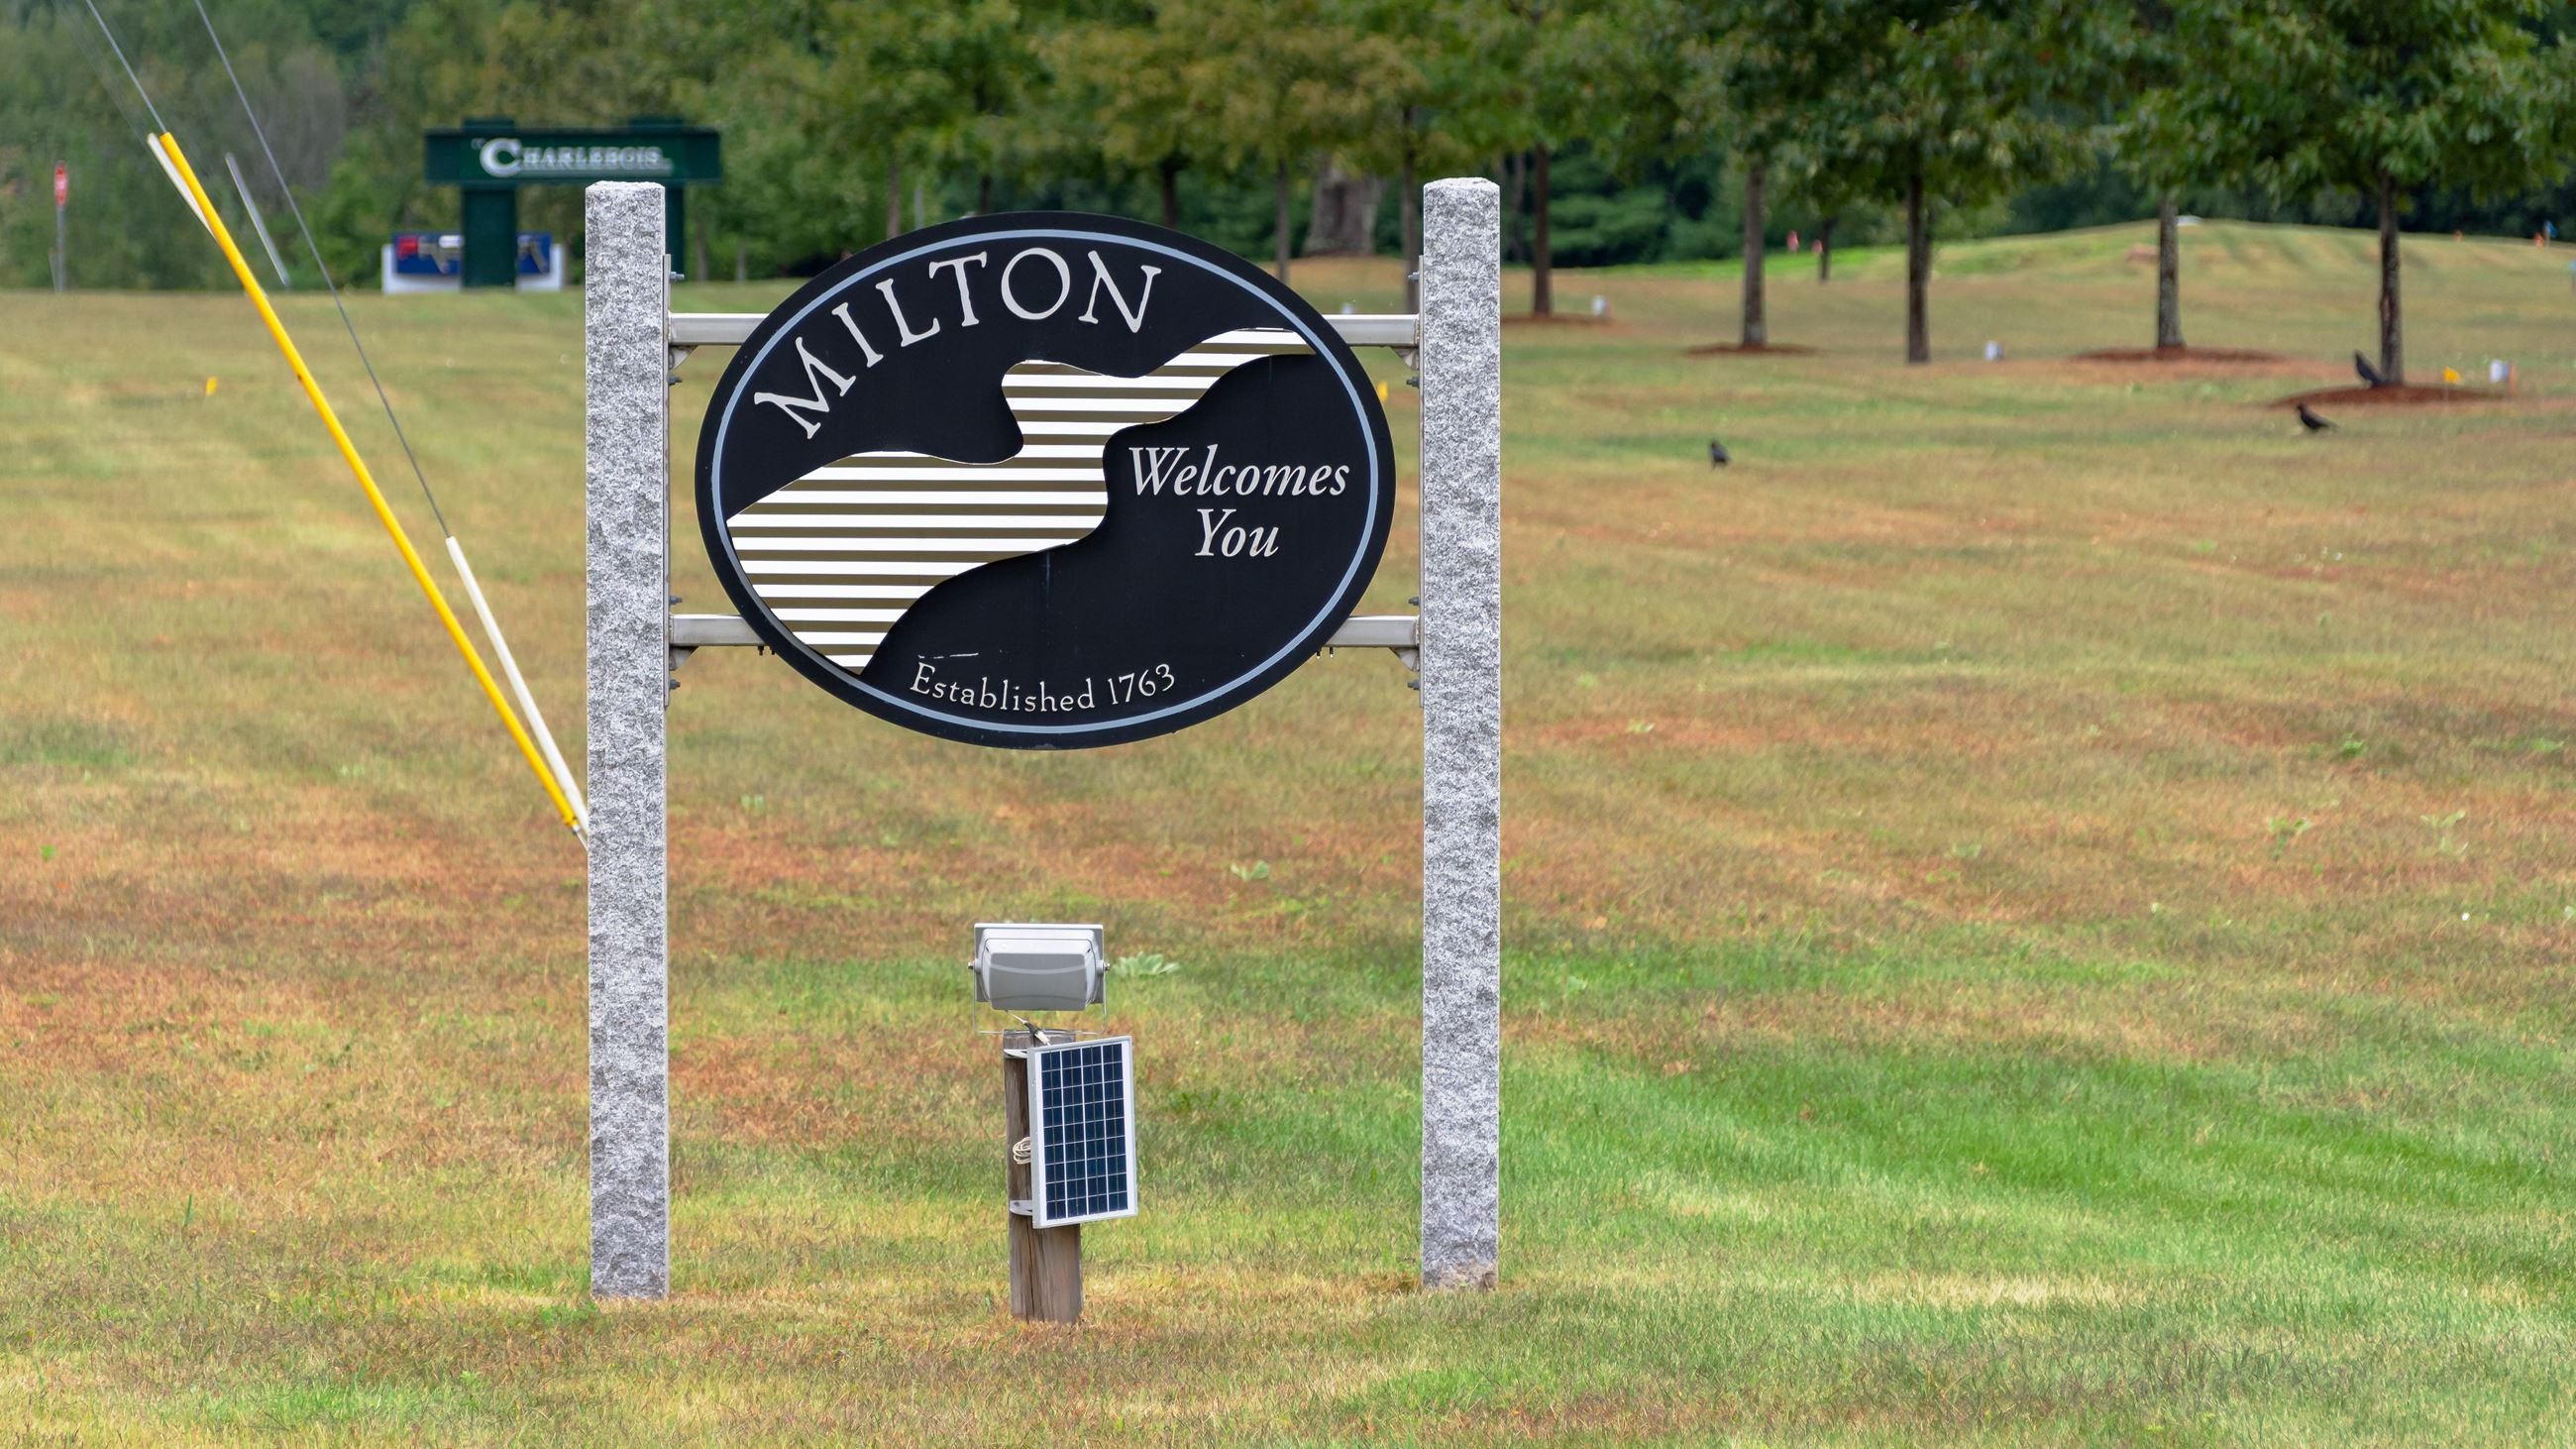 Milton Welcomes You Sign South